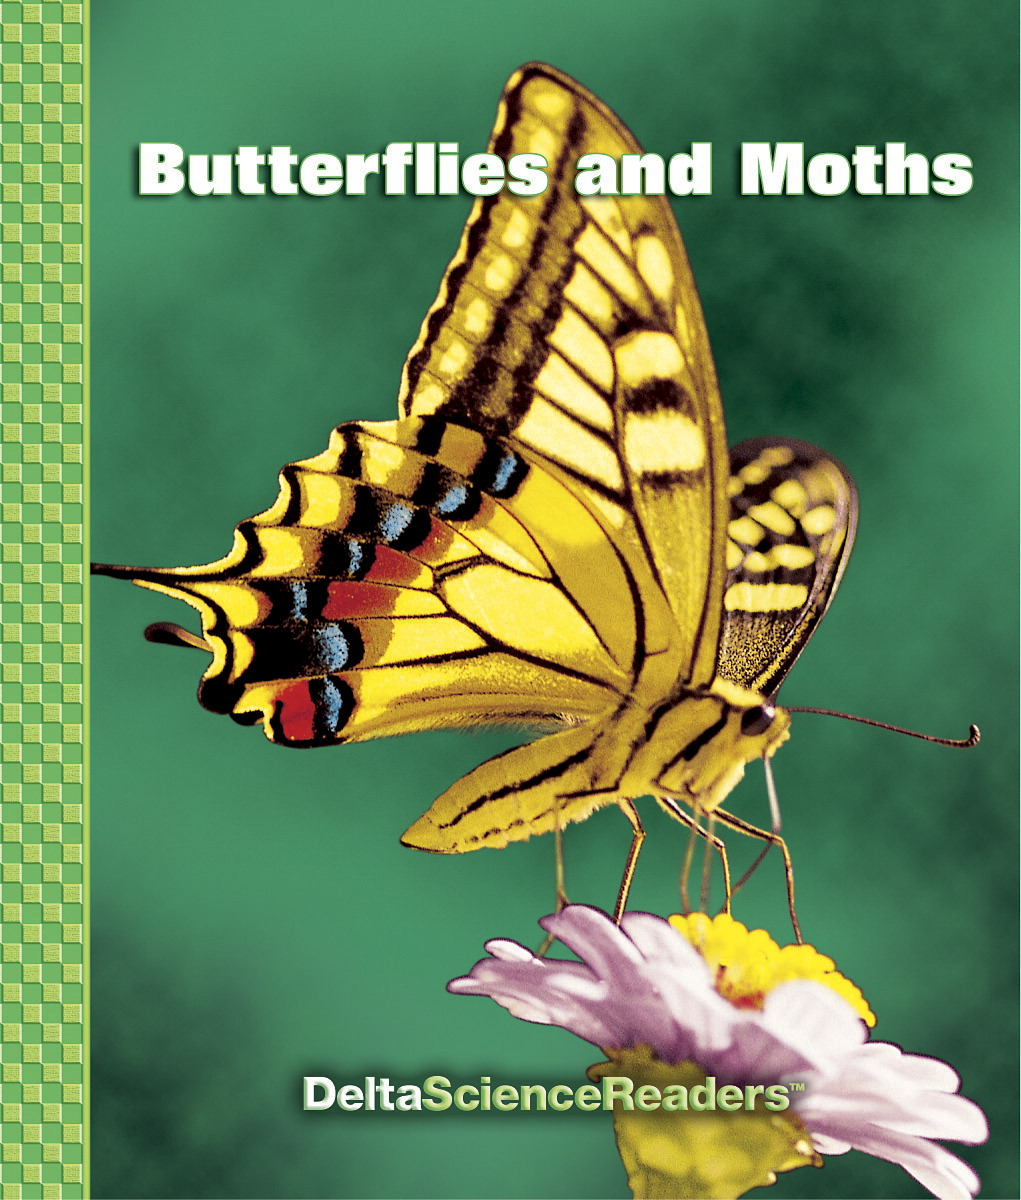 Delta Science Readers Butterflies and Moths Book - Pack of 8